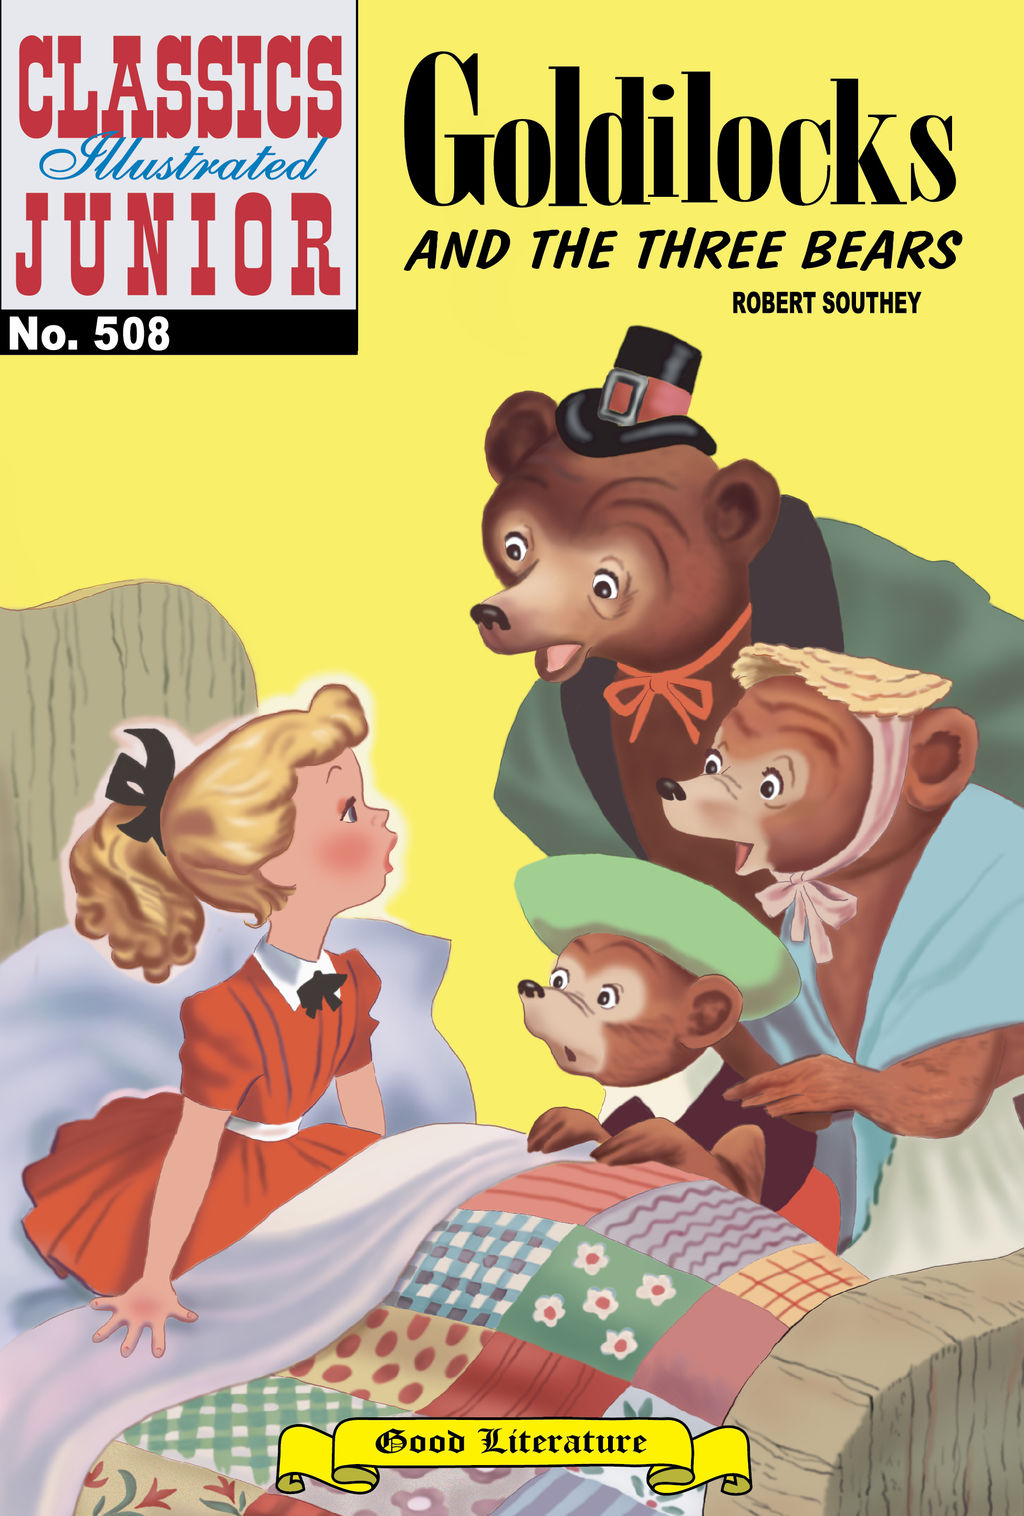 Goldilocks and the Three Bears - Classics Illustrated Junior #508 By: Robert Southey